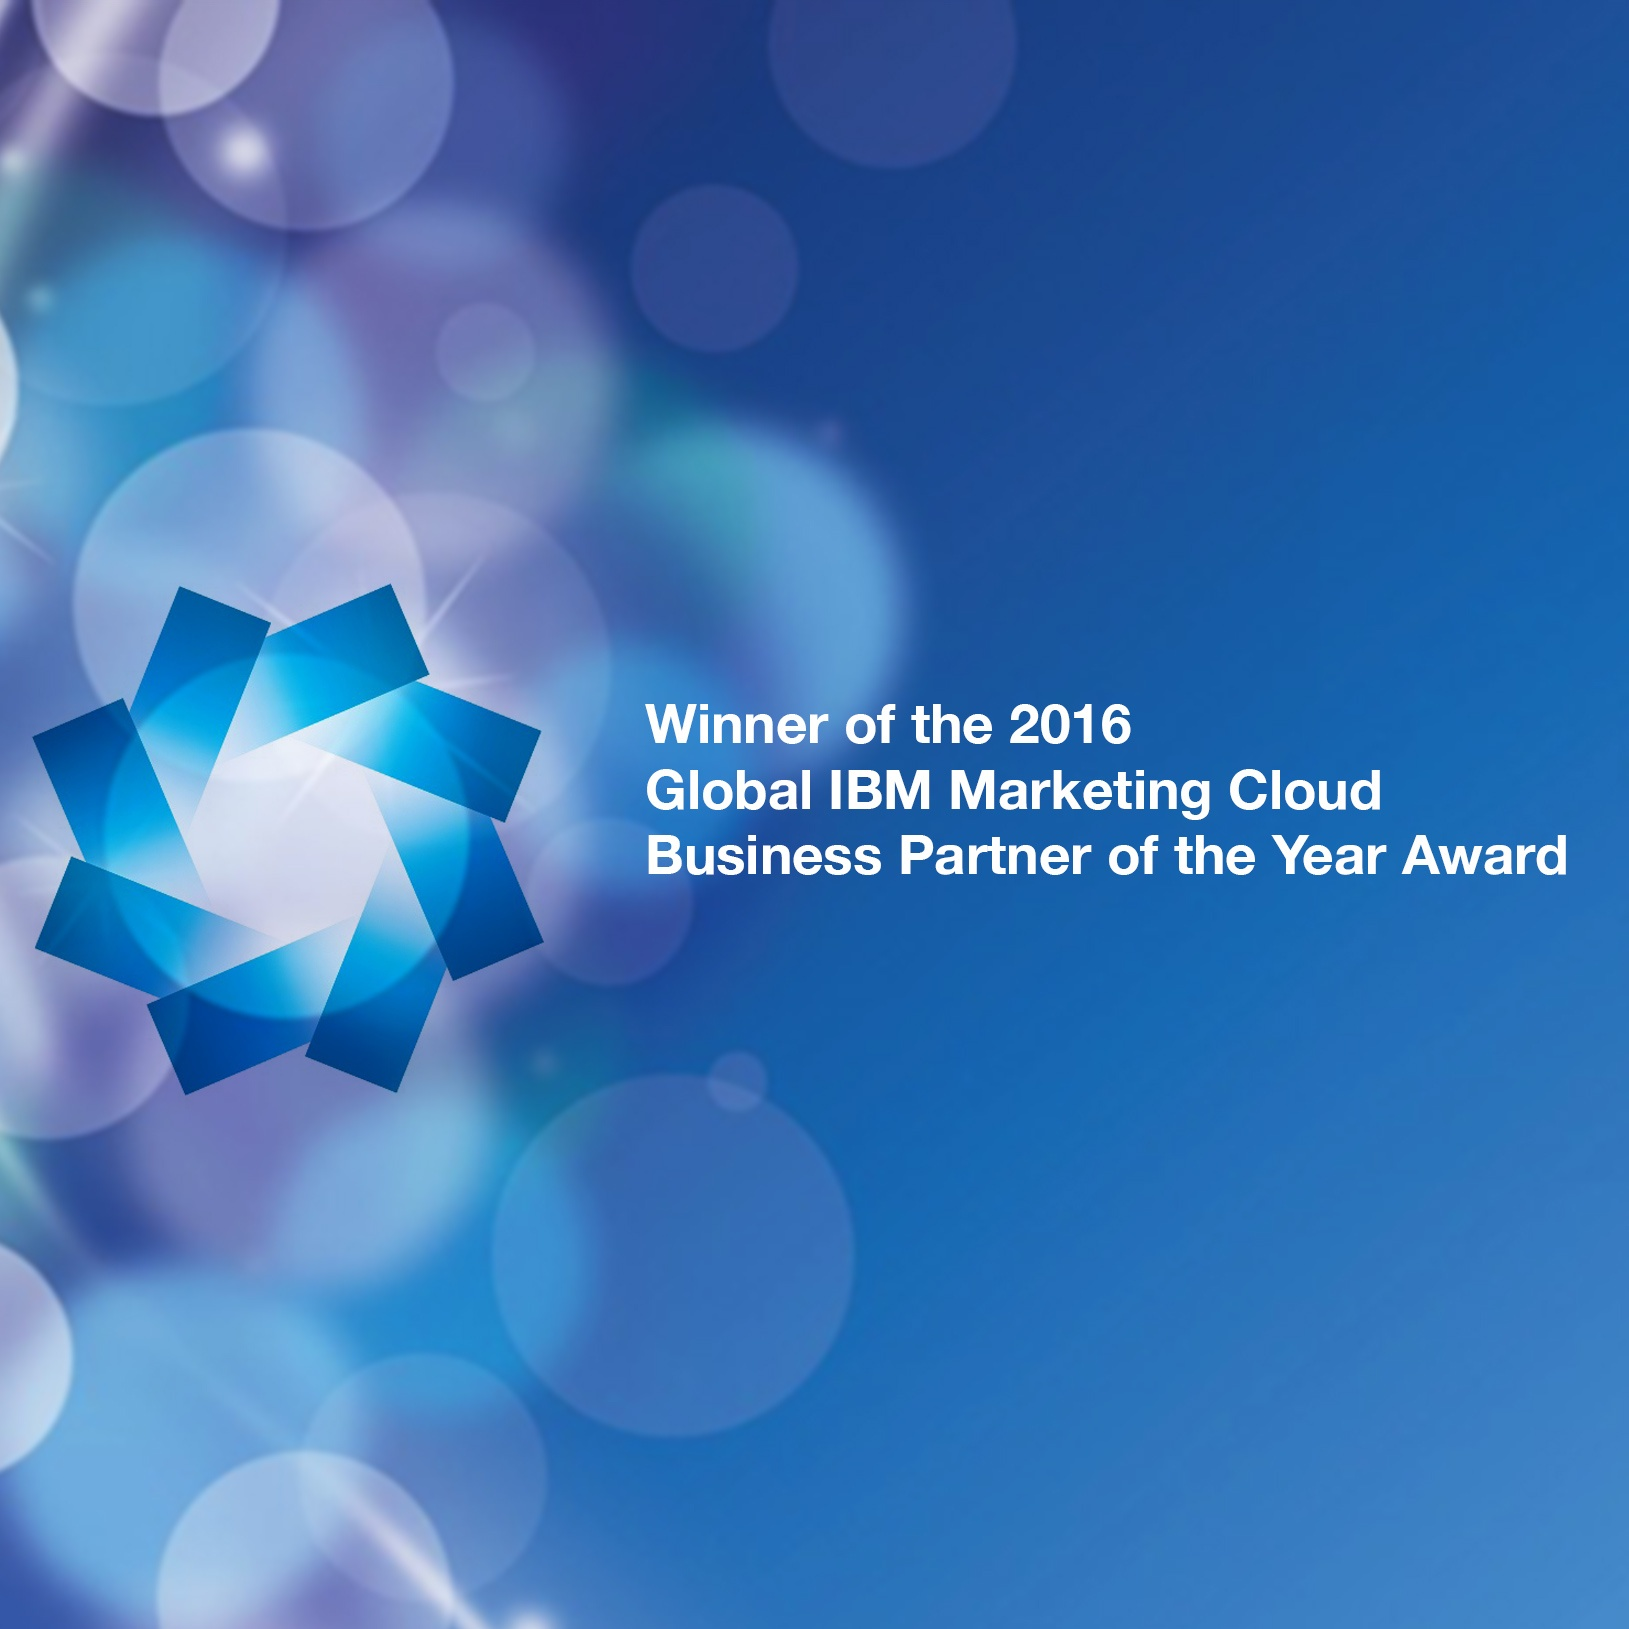 Engage Digital wins the 2016 Global IBM Marketing Cloud Business Partner of the Year Award